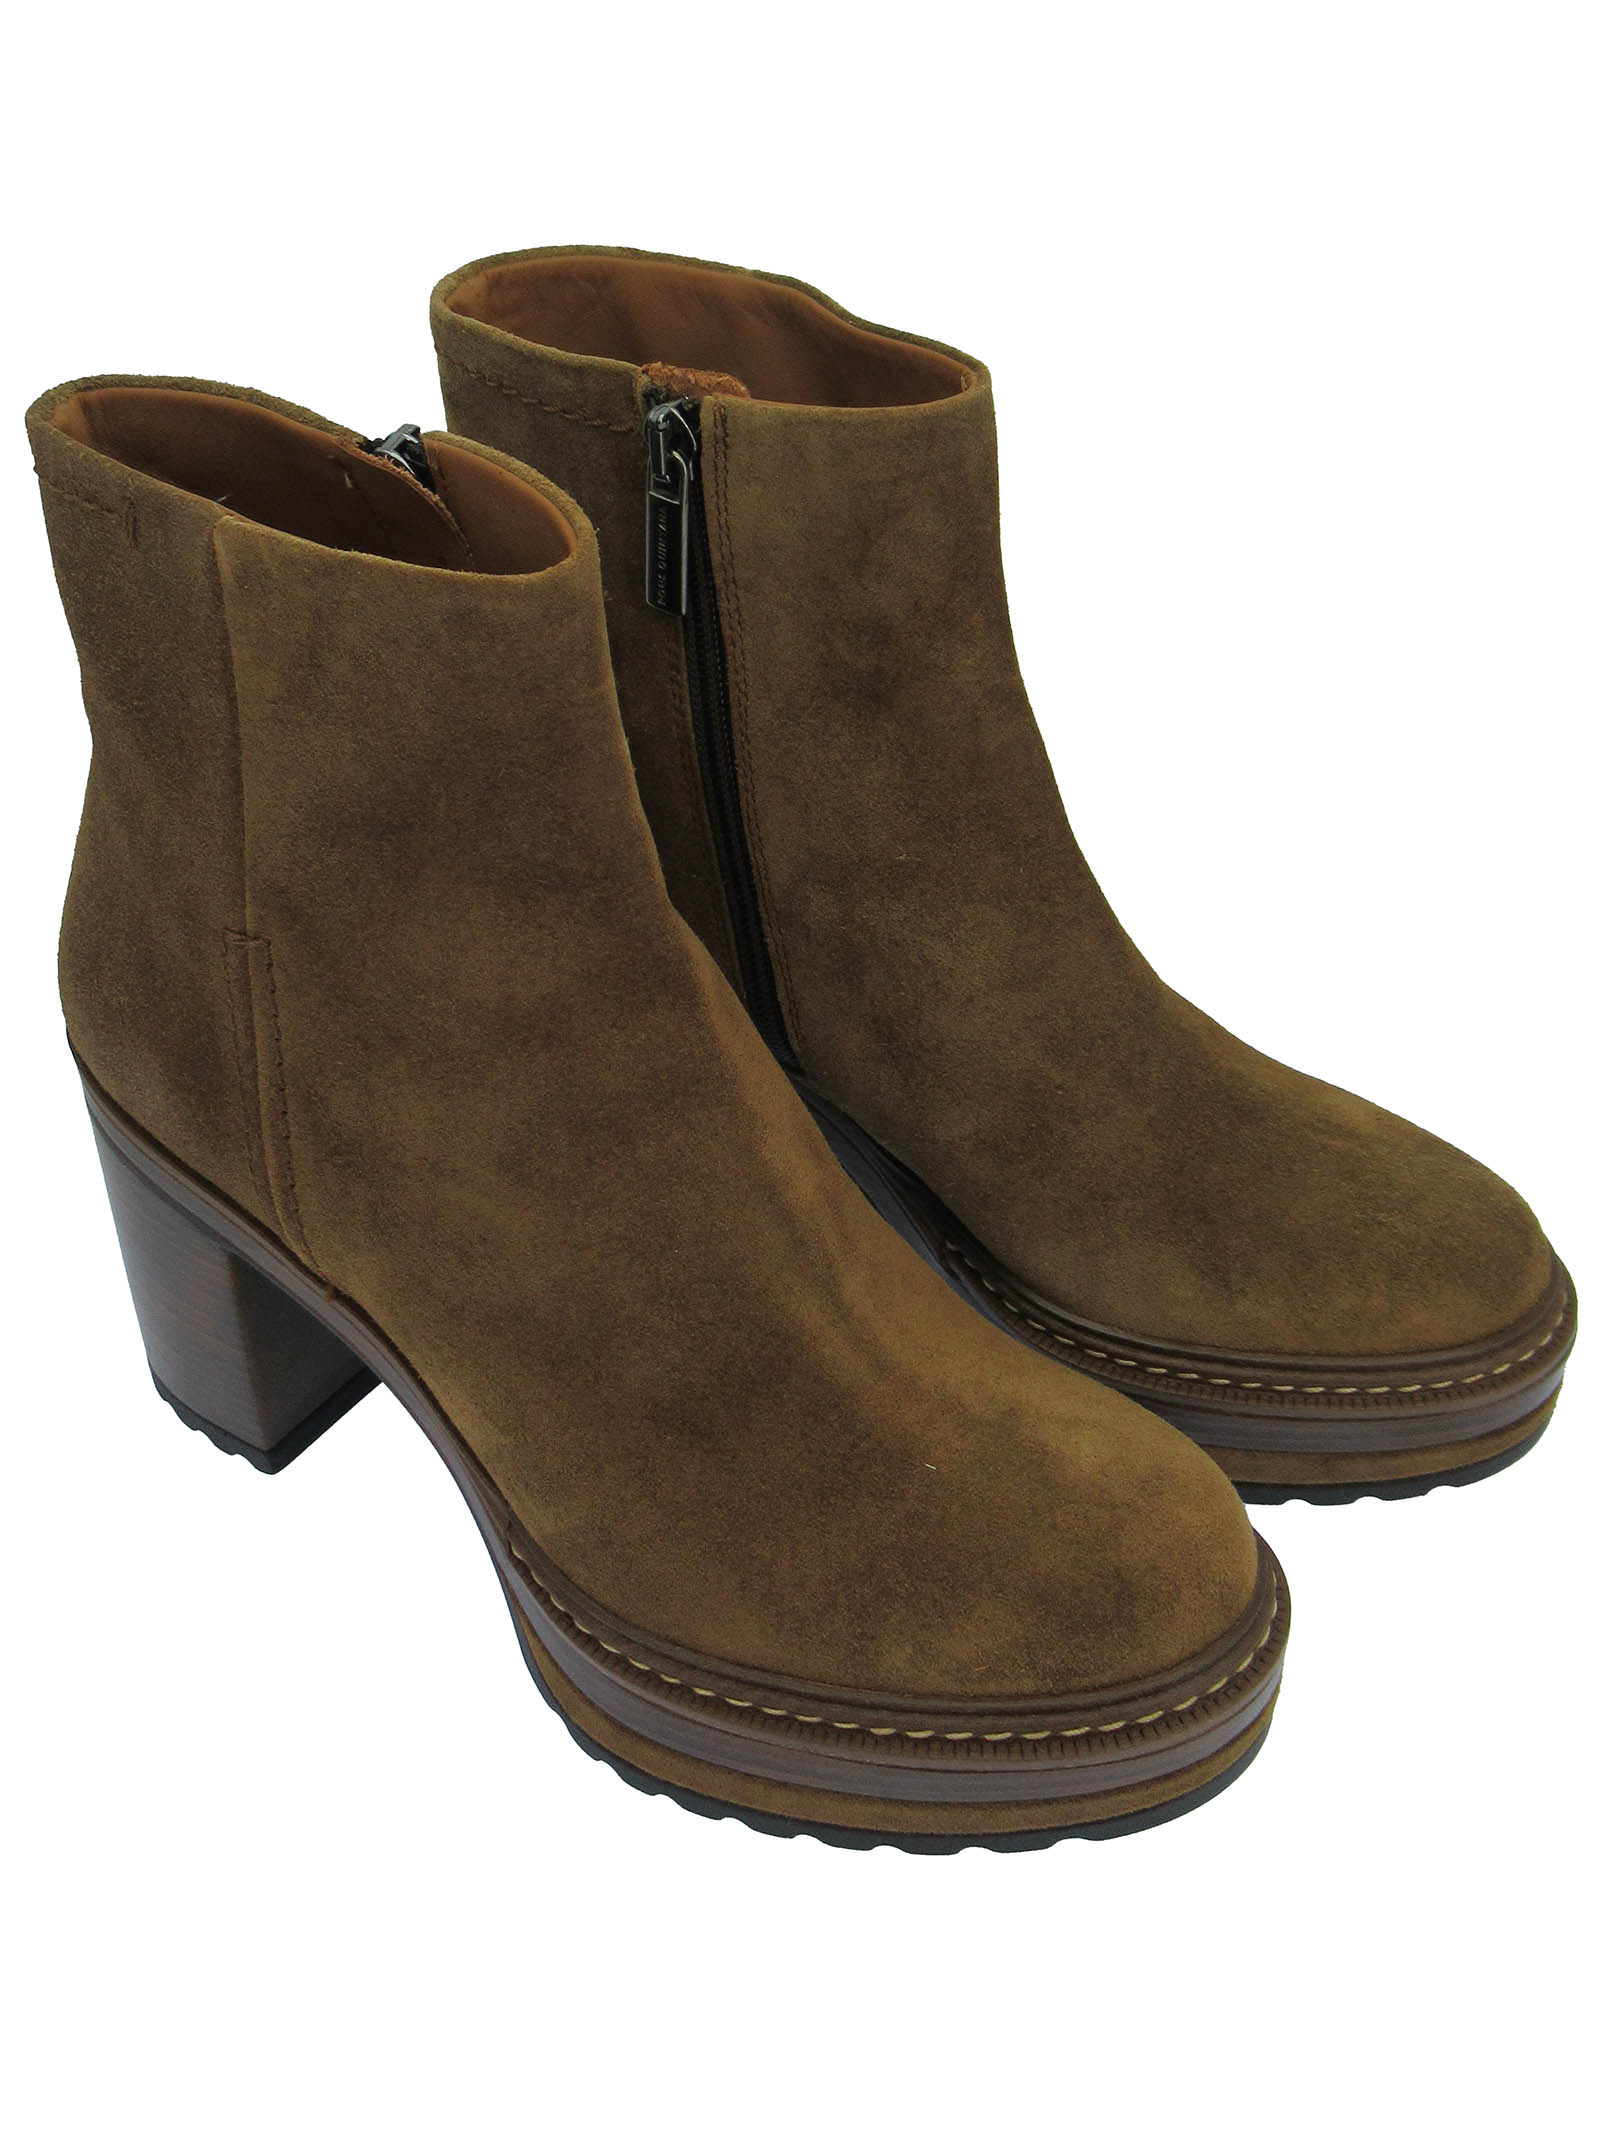 Women's Shoes Ankle Boots in Tan Suede with Size Zip and High Heel and Platform  Pons Quintana   Ankle Boots   9542014